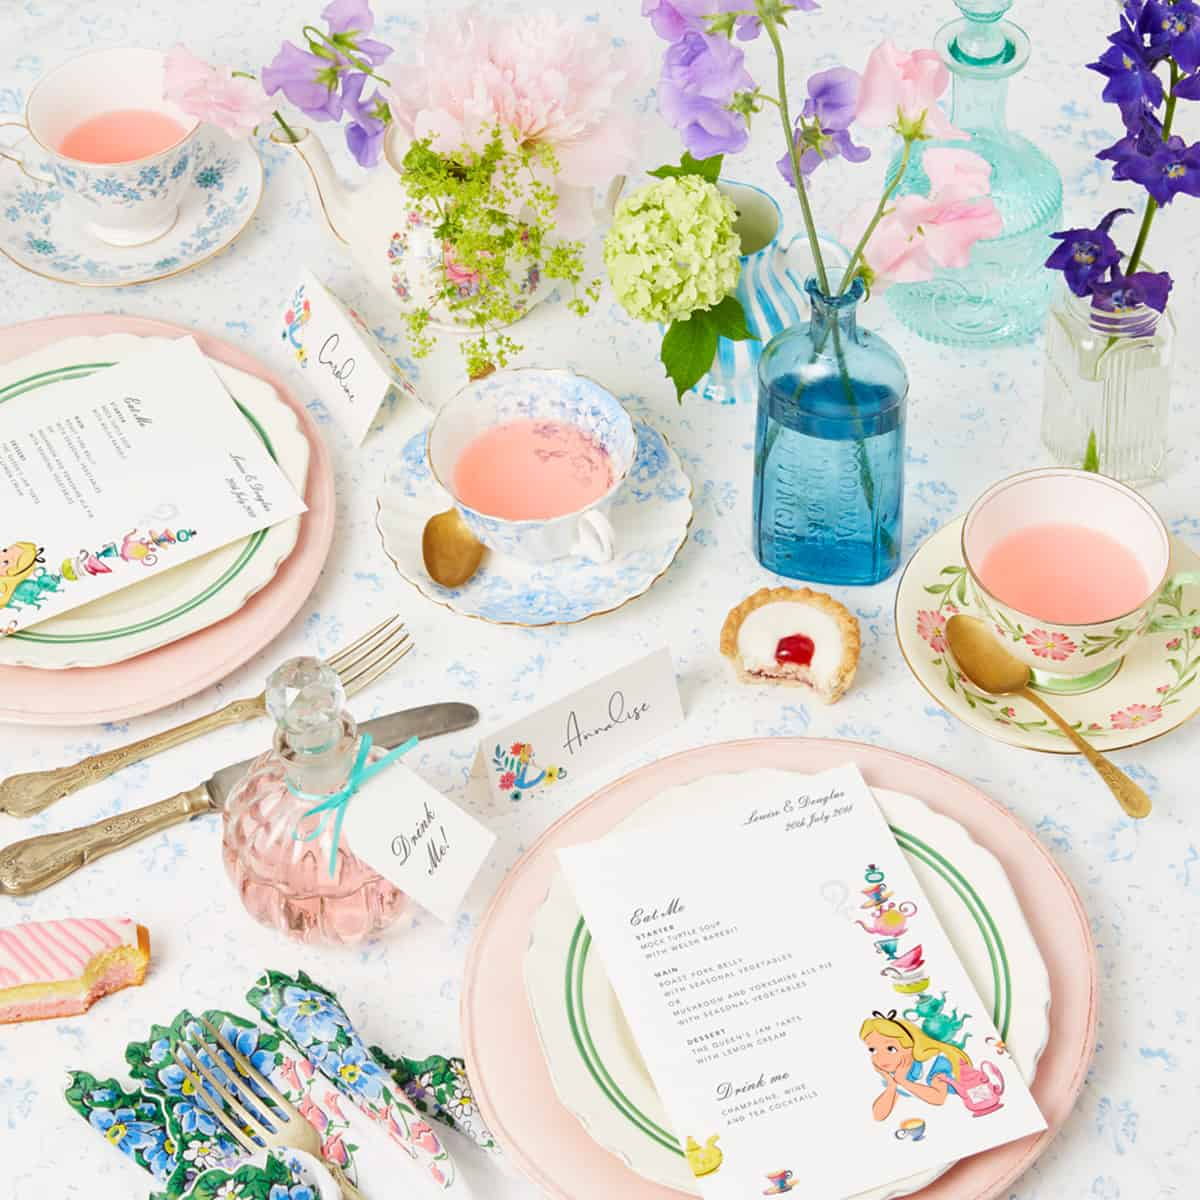 05.18_TheFold_WeddingTableSettings_VintageQuirky_social